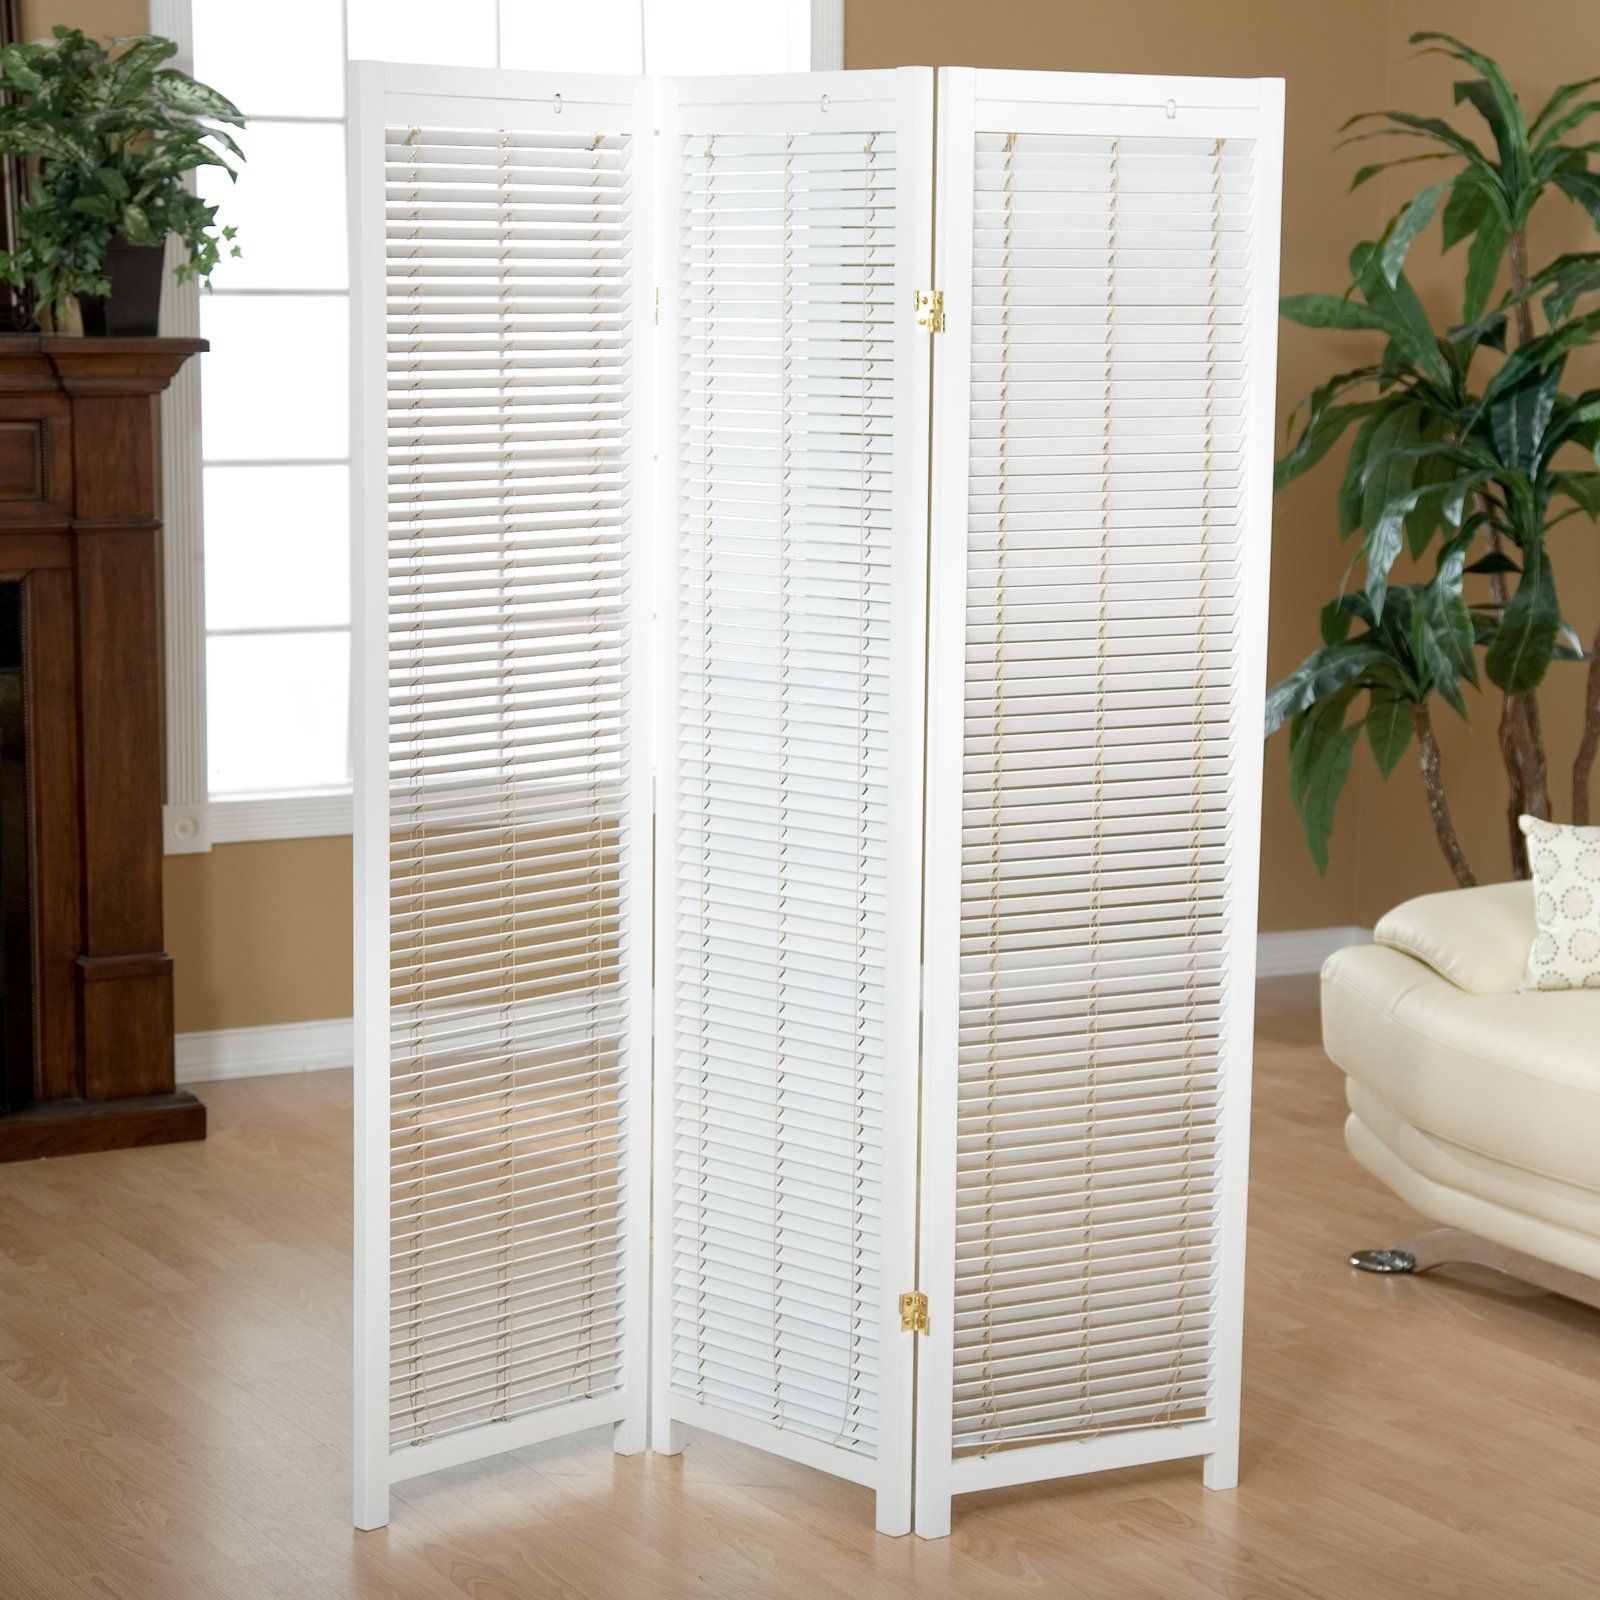 Tranquility Wooden Shutter Screen Room Divider In White 139 98